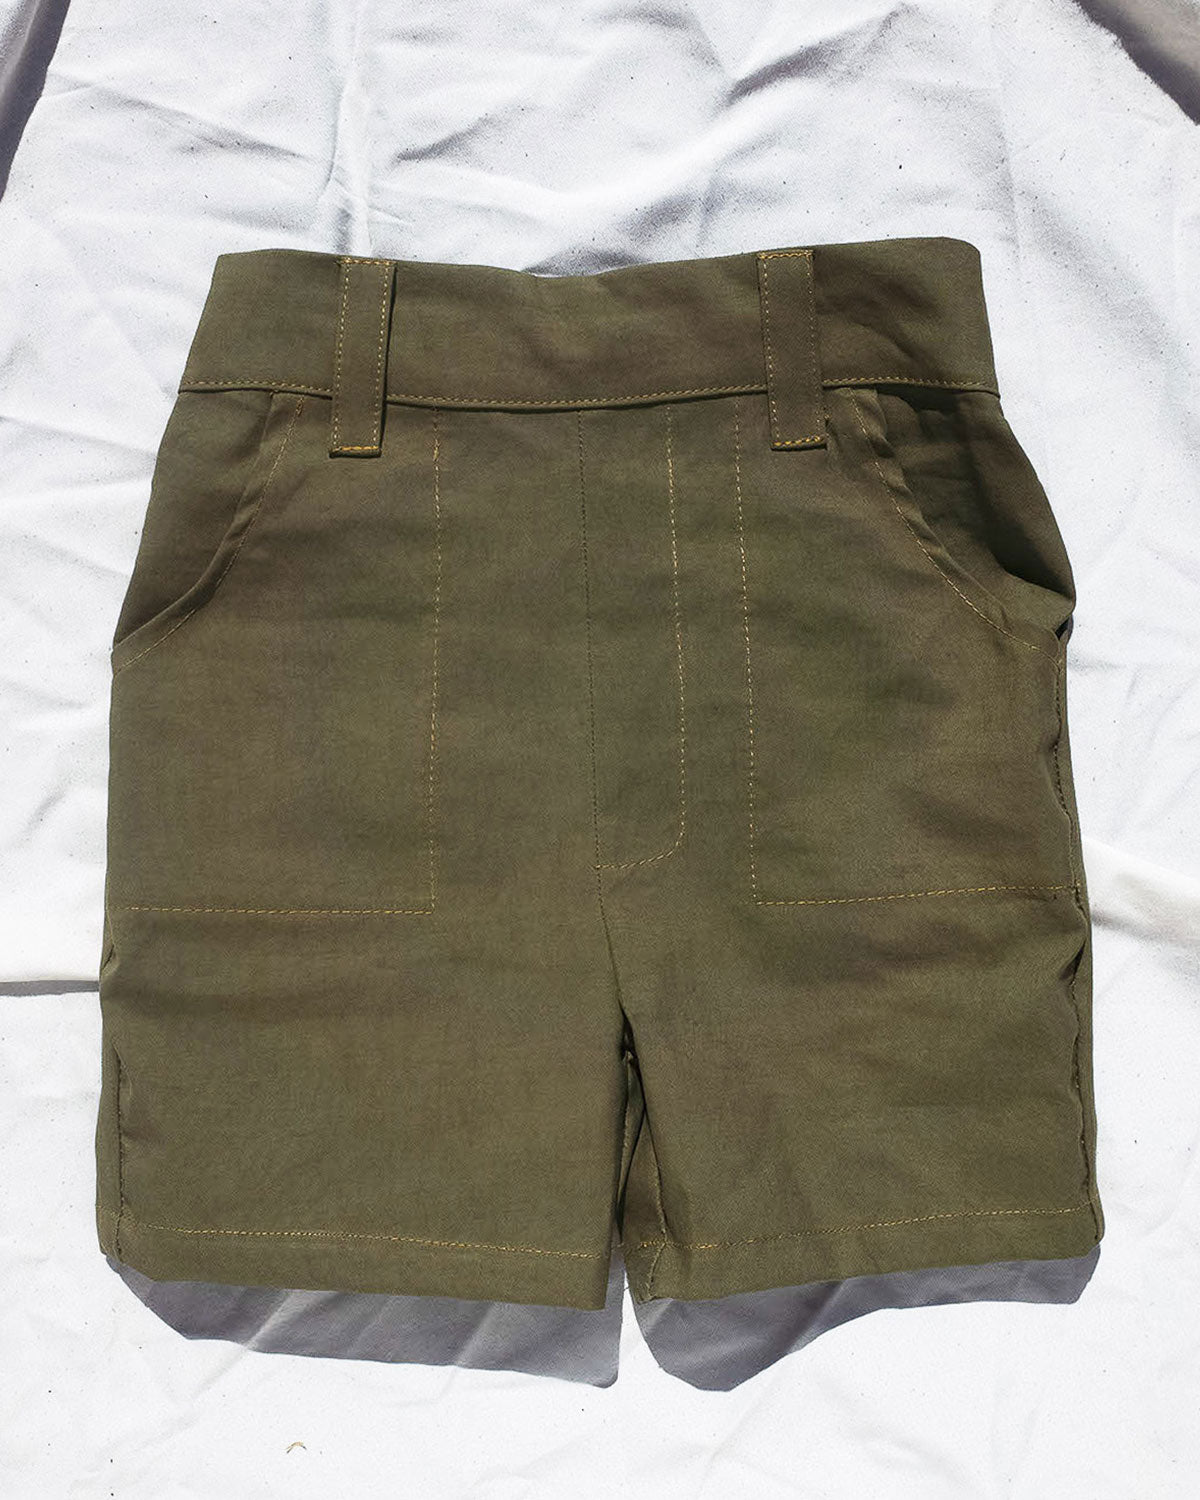 Olive green Short for toddlers and kids/ High waisted and 2 pockets.